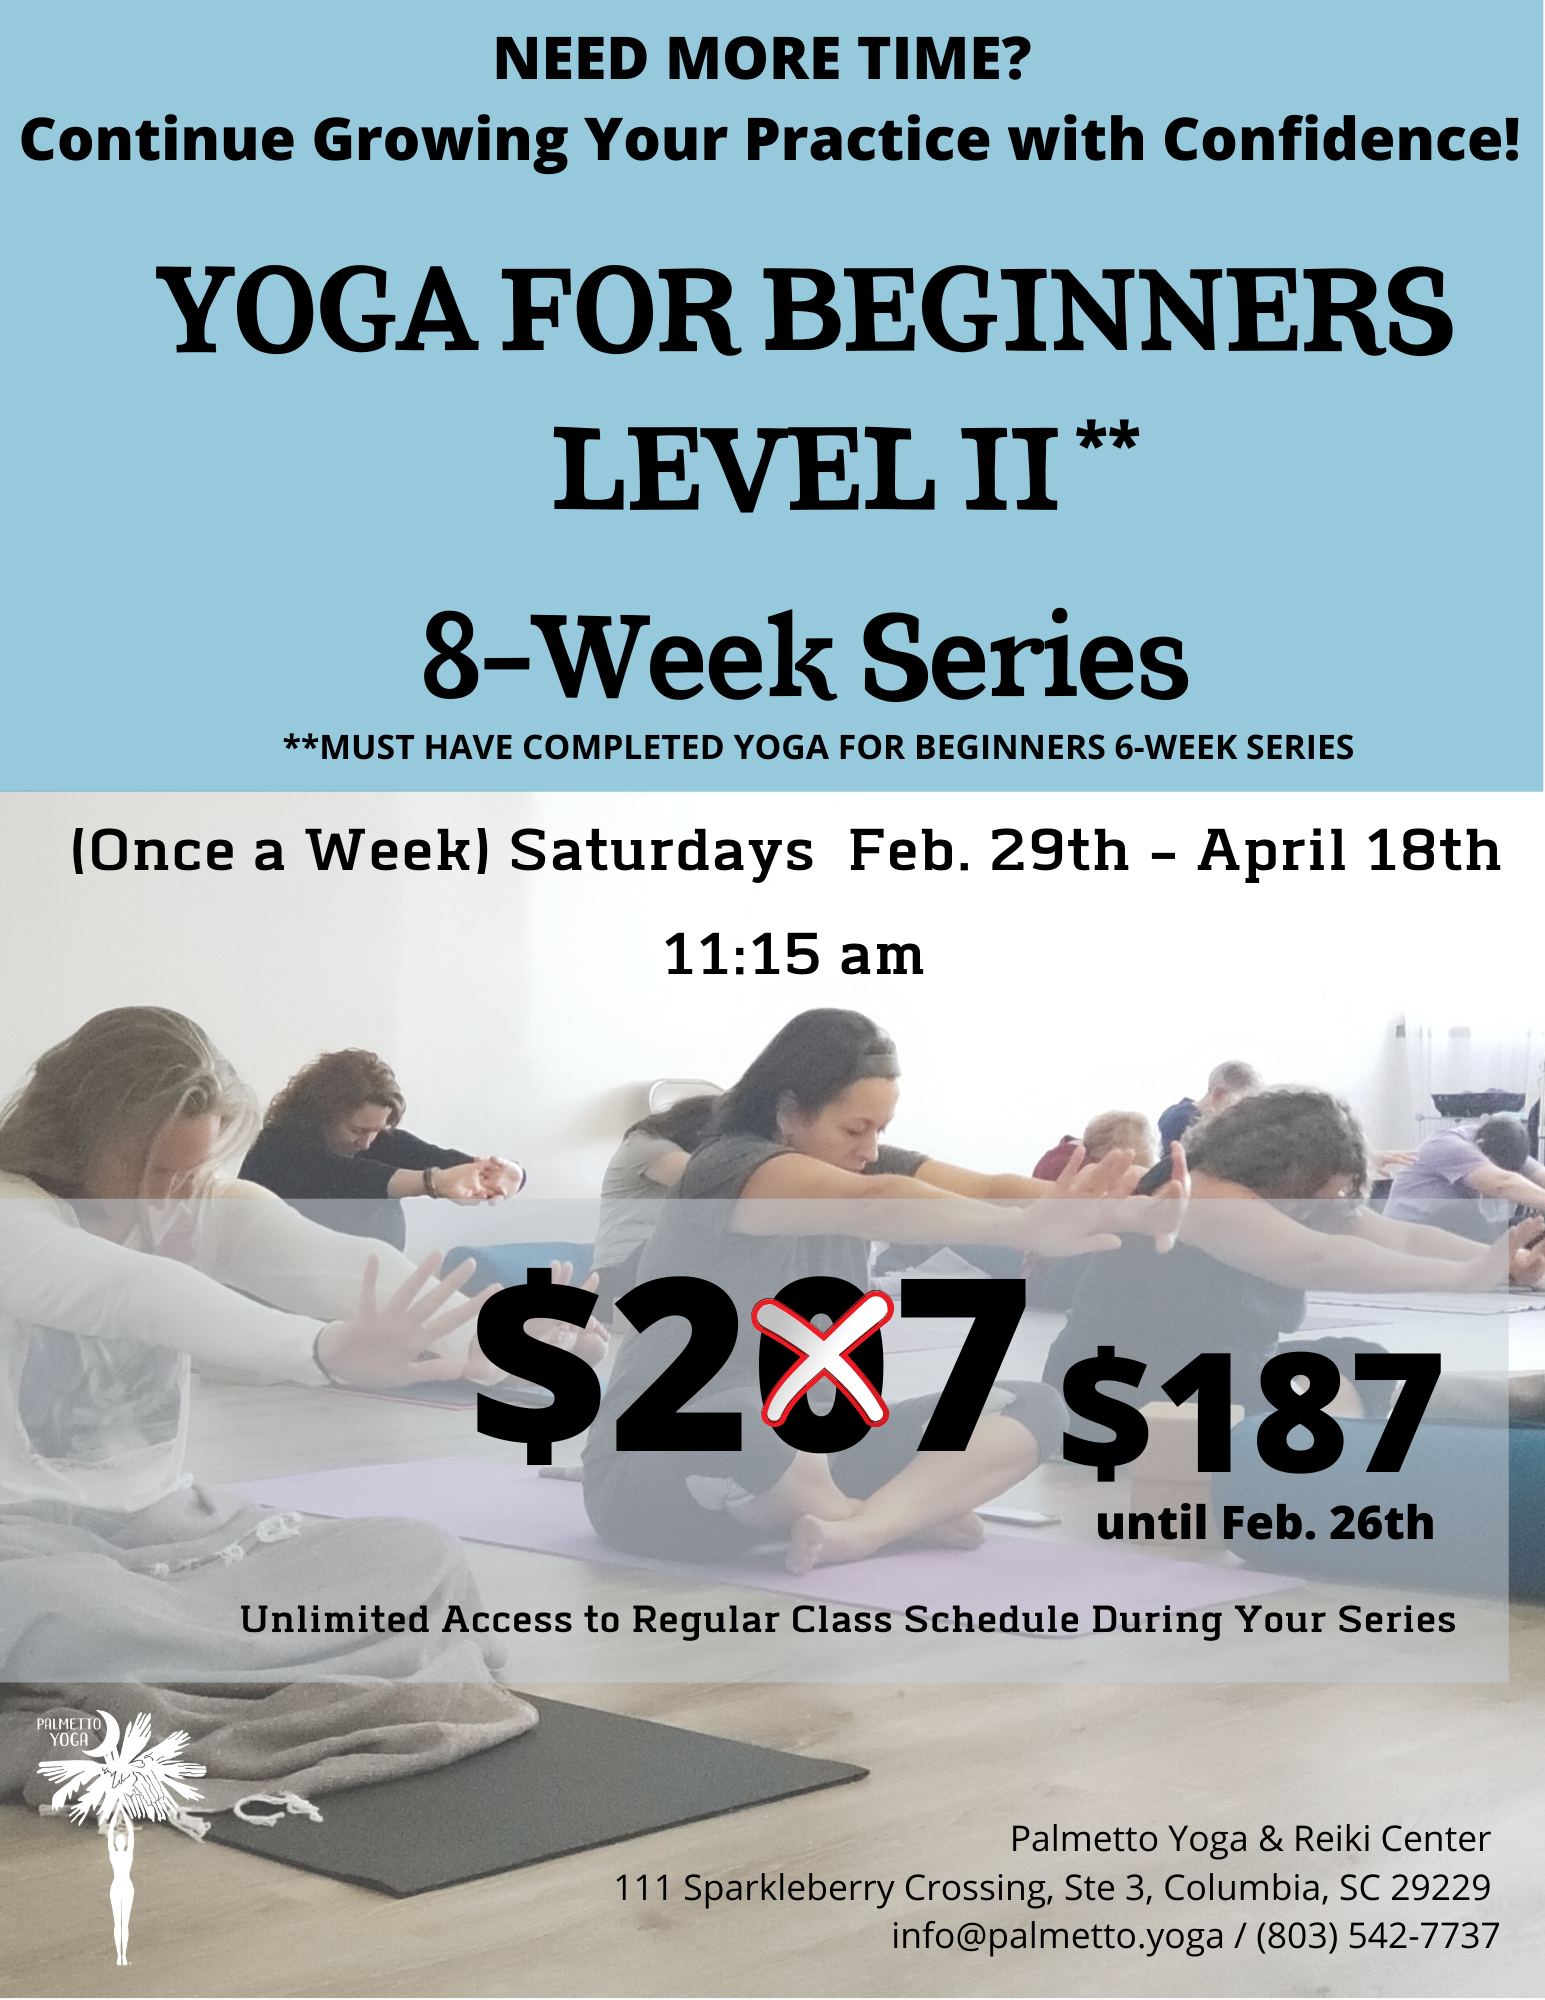 YOGA FOR BEGINNERS LEVEL II